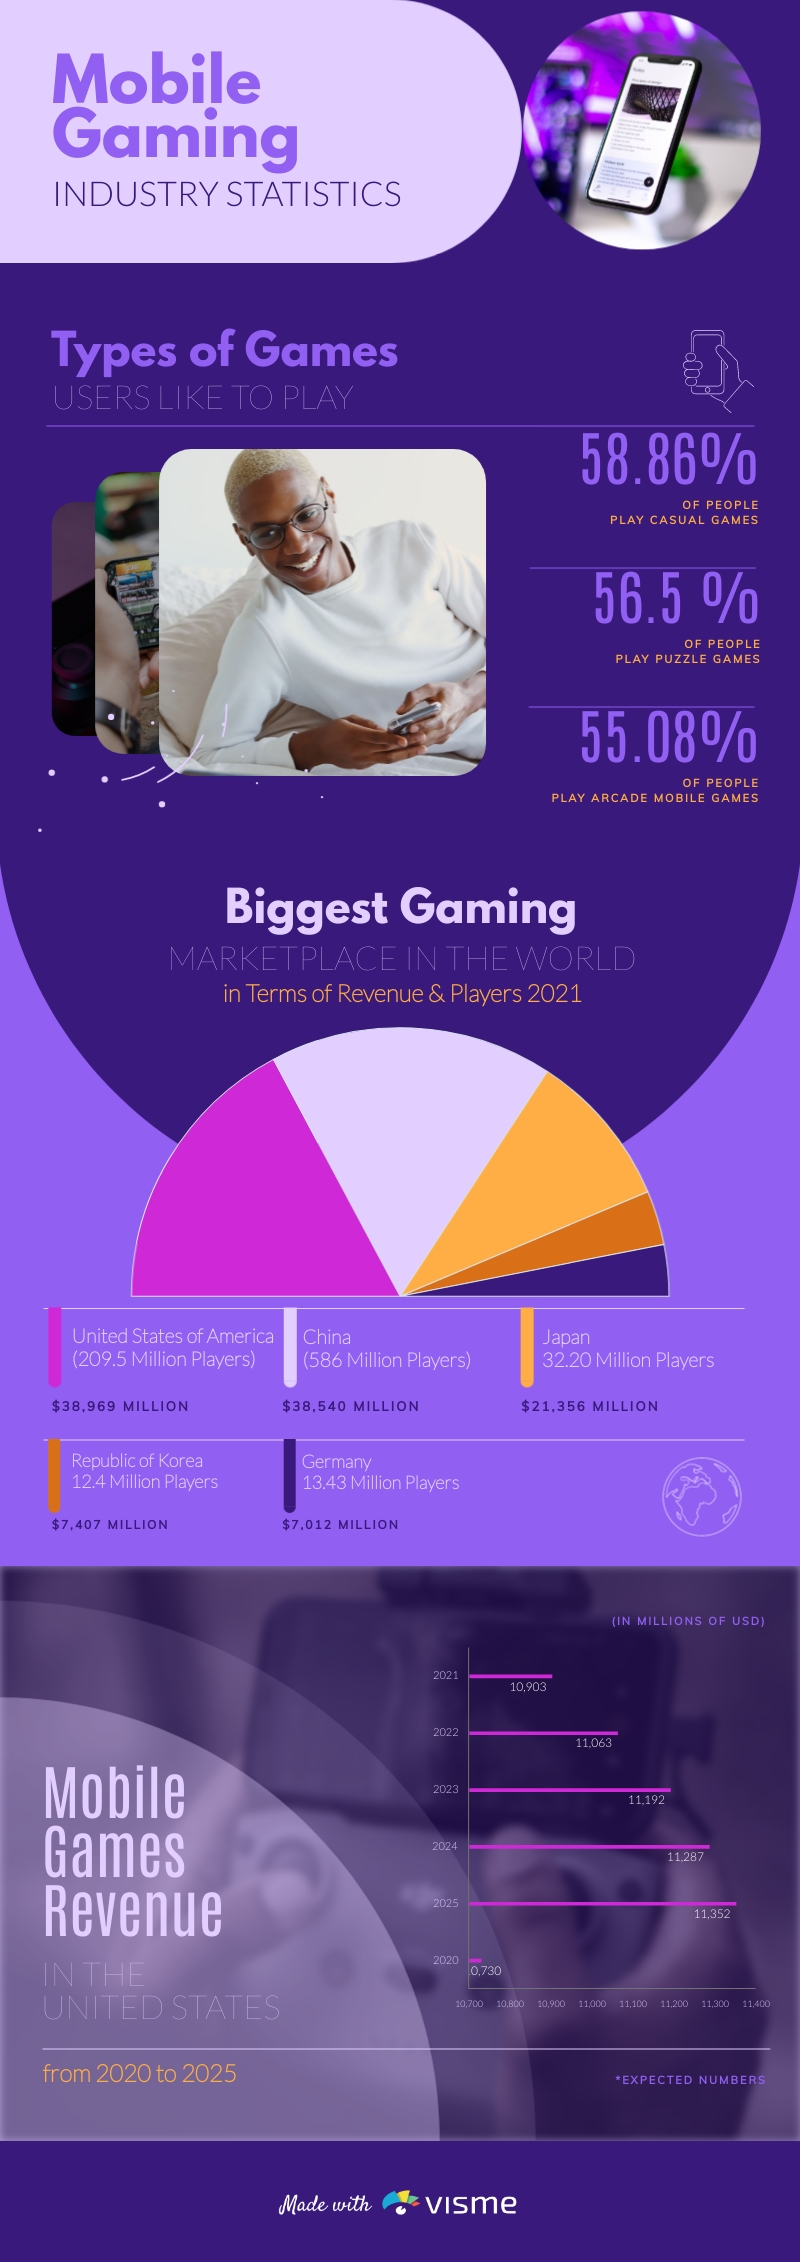 Mobile Gaming Trends Infographic Template